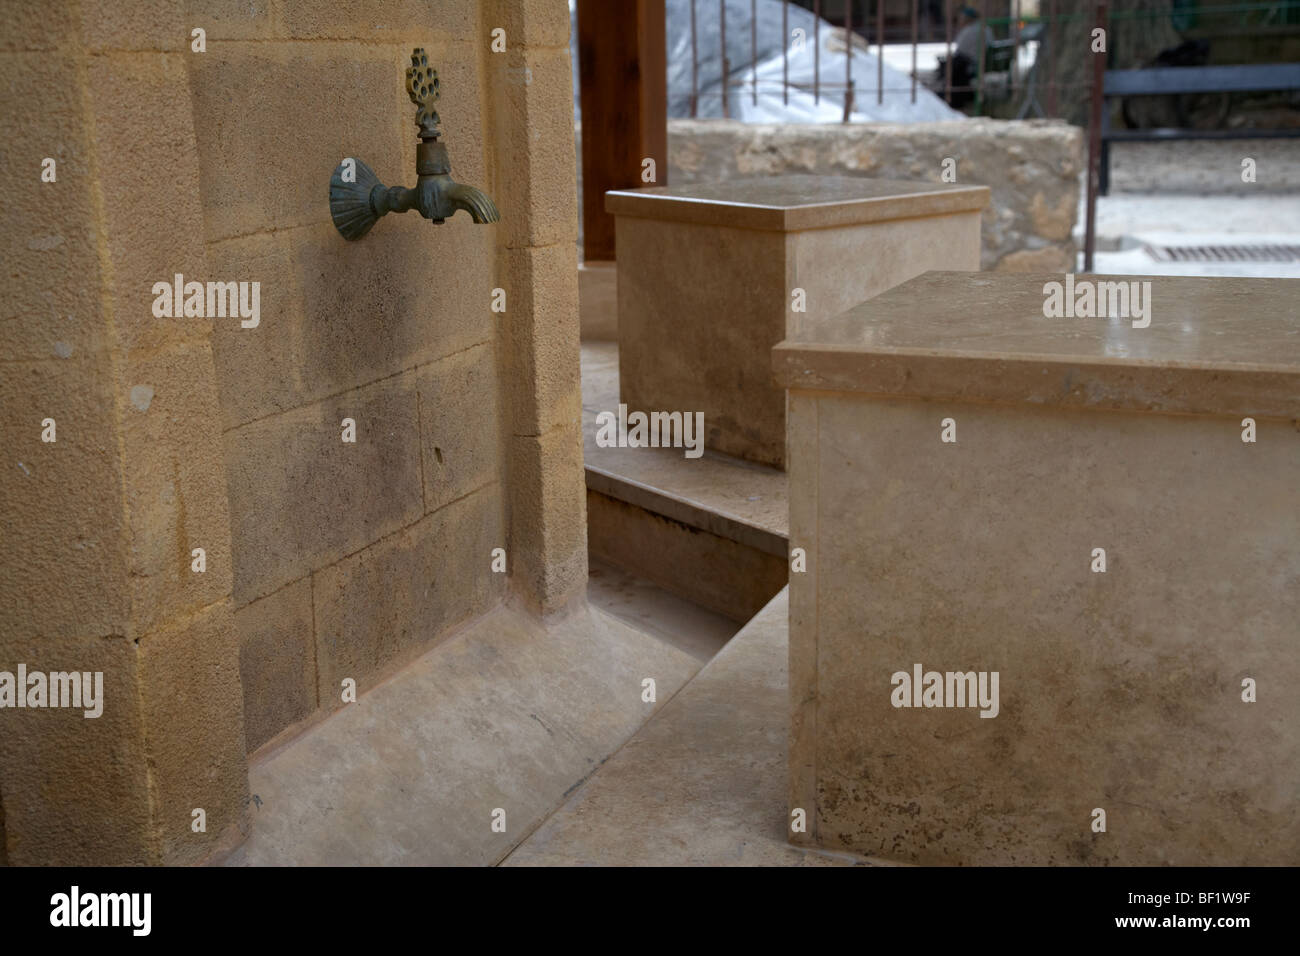 tap and seat at the ablution fountains outside the lala mustafa pasha mosque in famagusta - Stock Image